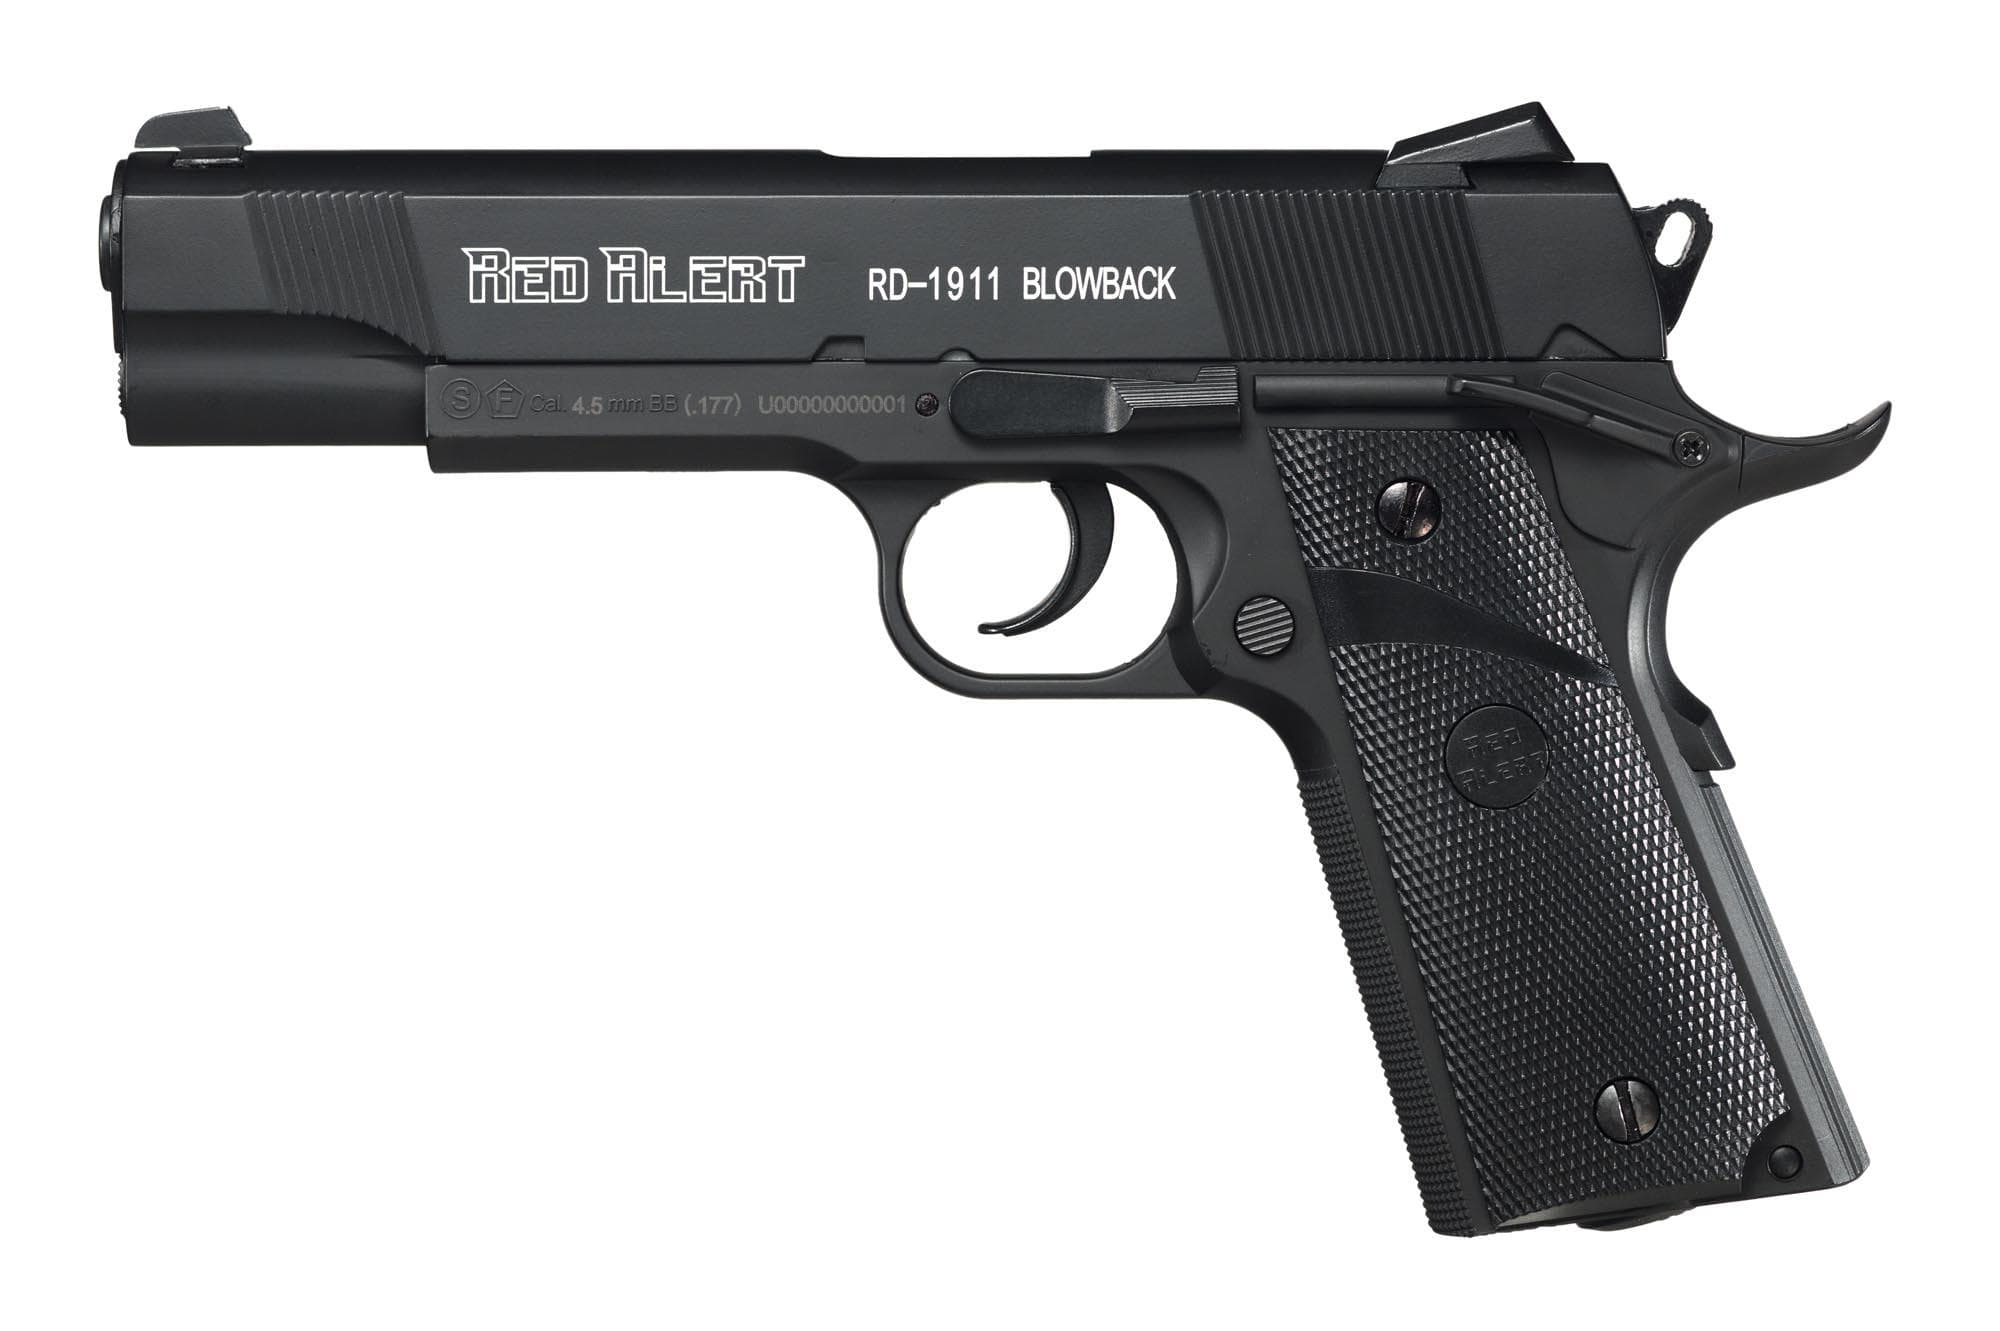 Red Alert RD-1911 blow-back - BB's - 4.5mm - 3 joules - CO2 - G2420